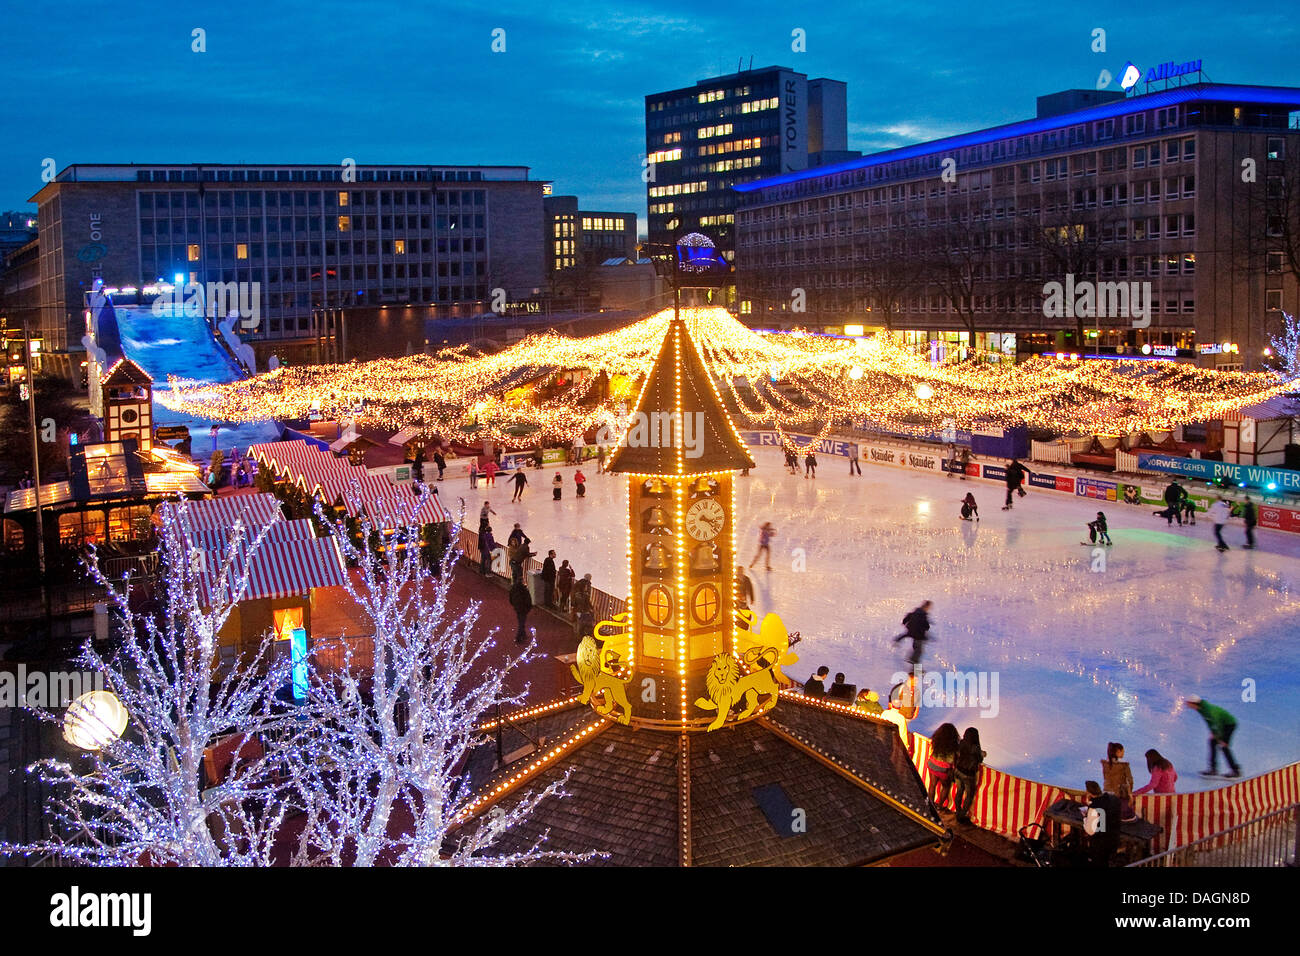 Essen on Ice event at the illuminated Kennedy Square in the city center in the evening, Germany, North Rhine-Westphalia, - Stock Image